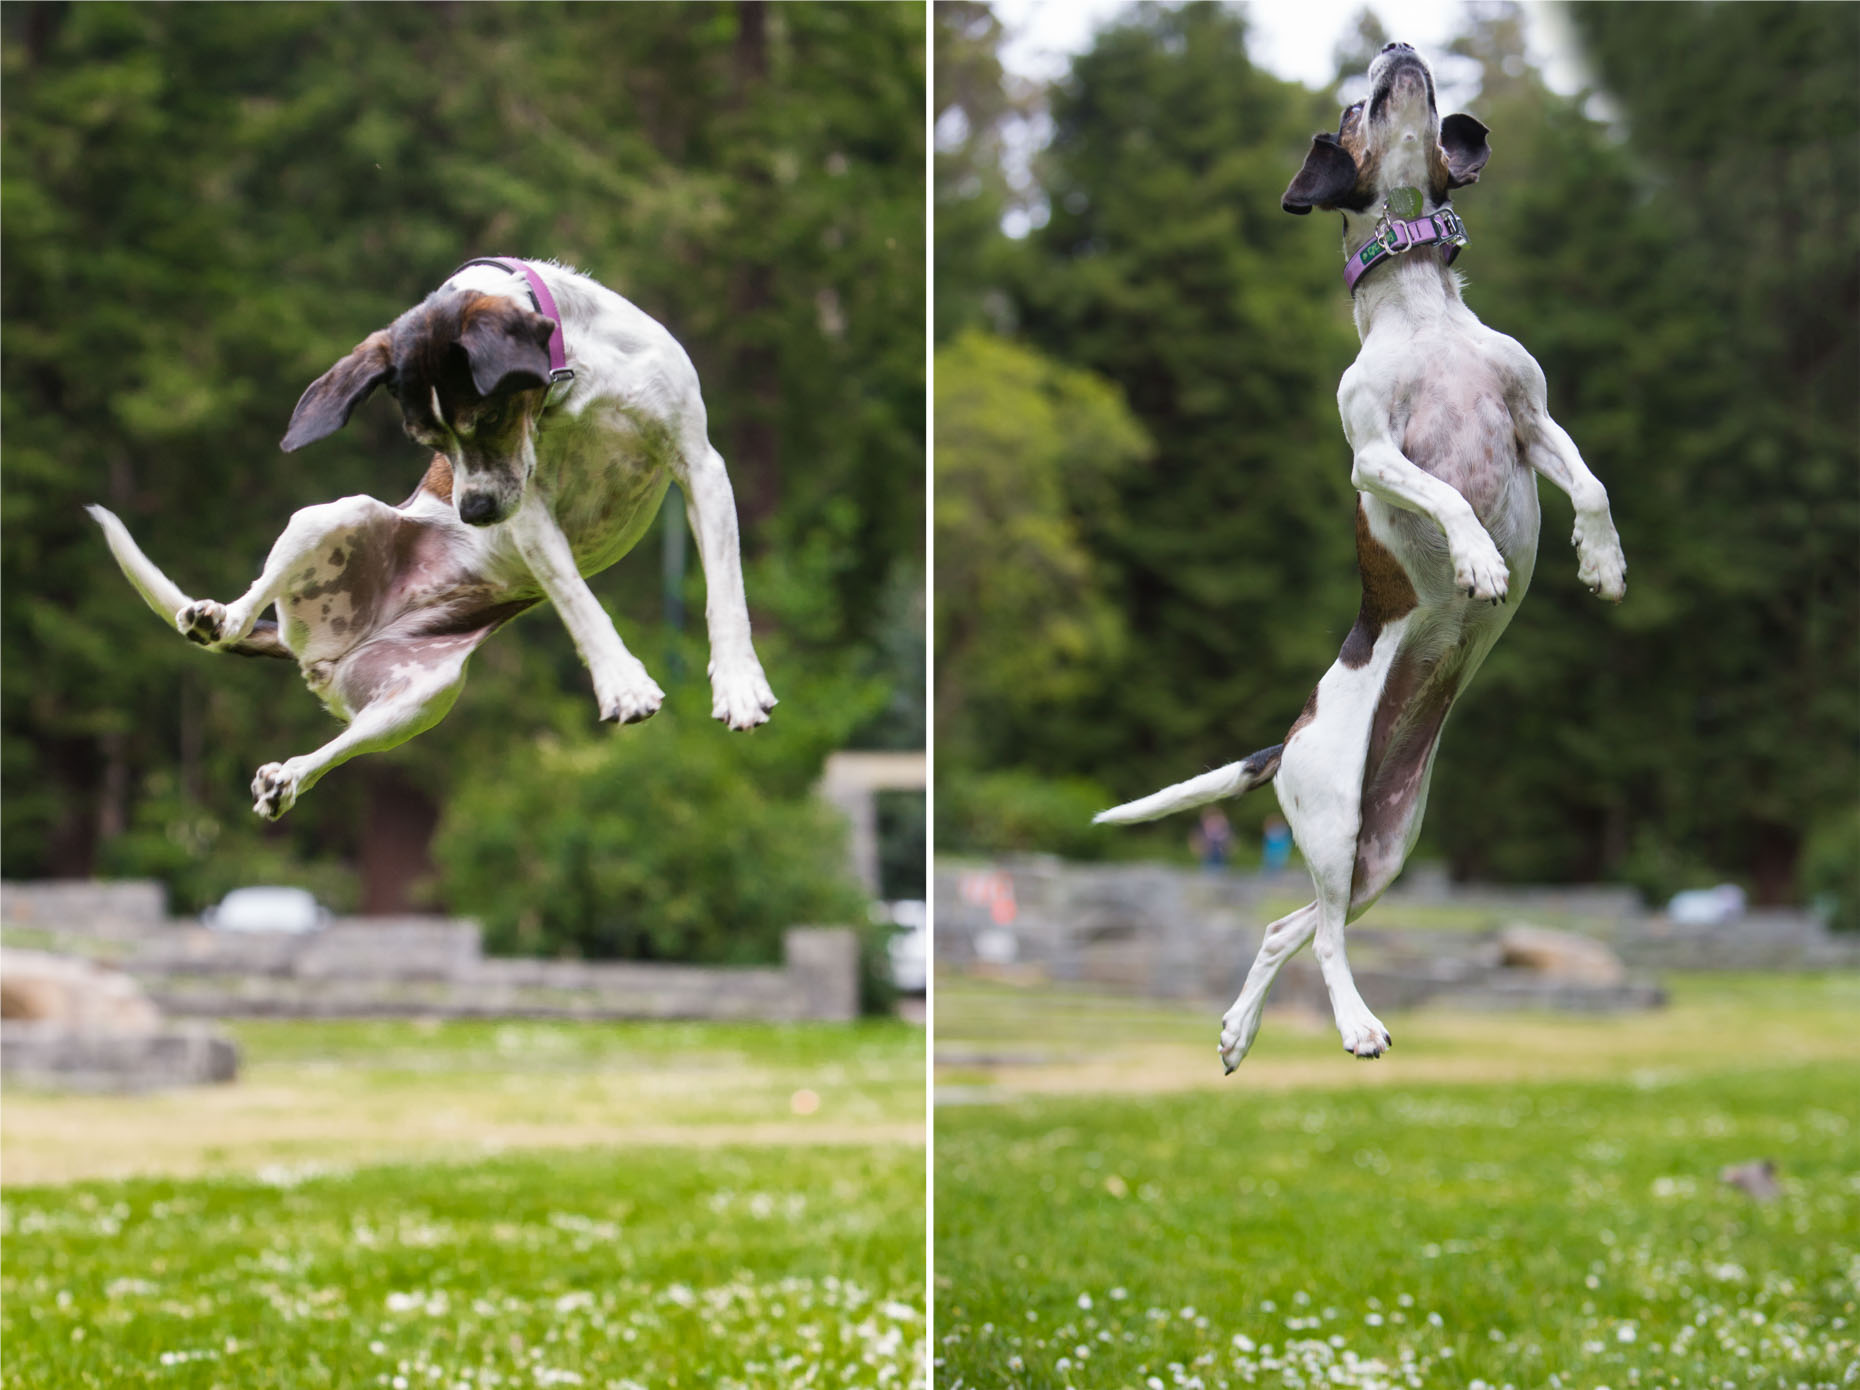 Dog Photography  |  Dog Jumping by Mark Rogers